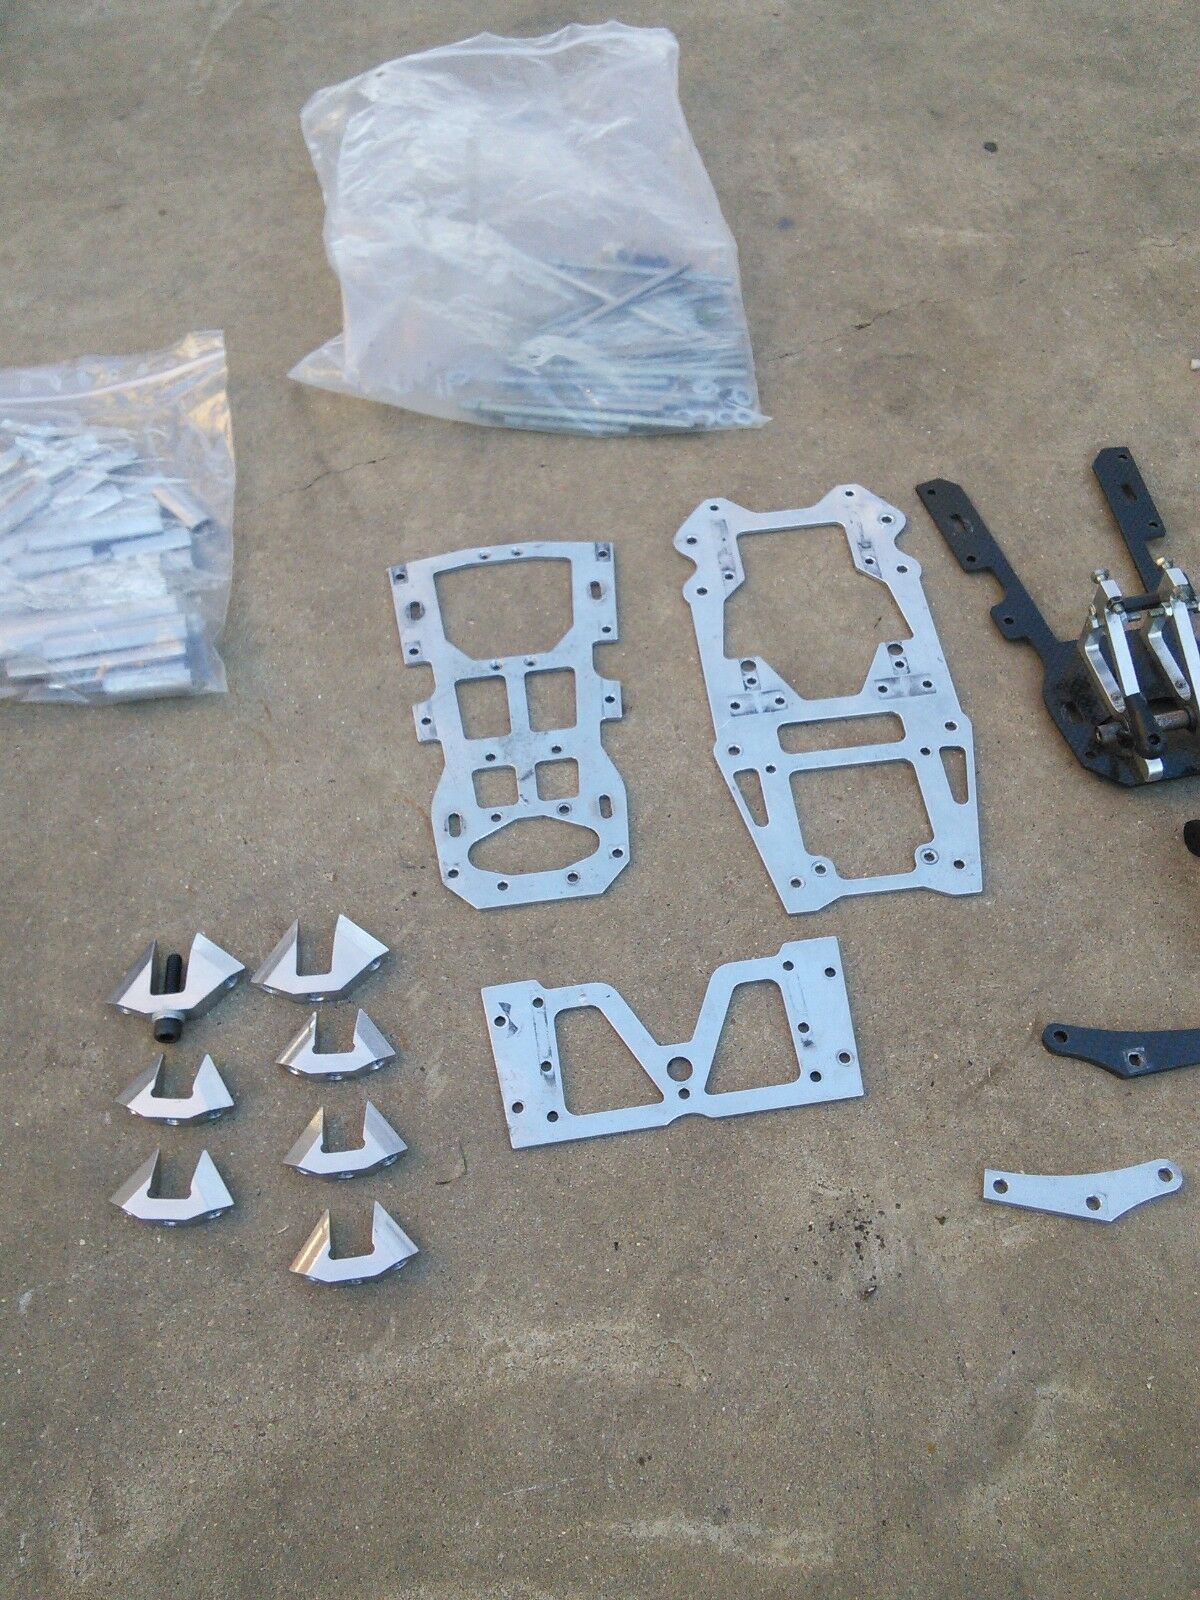 Lauterbacher f1 parts  new and used